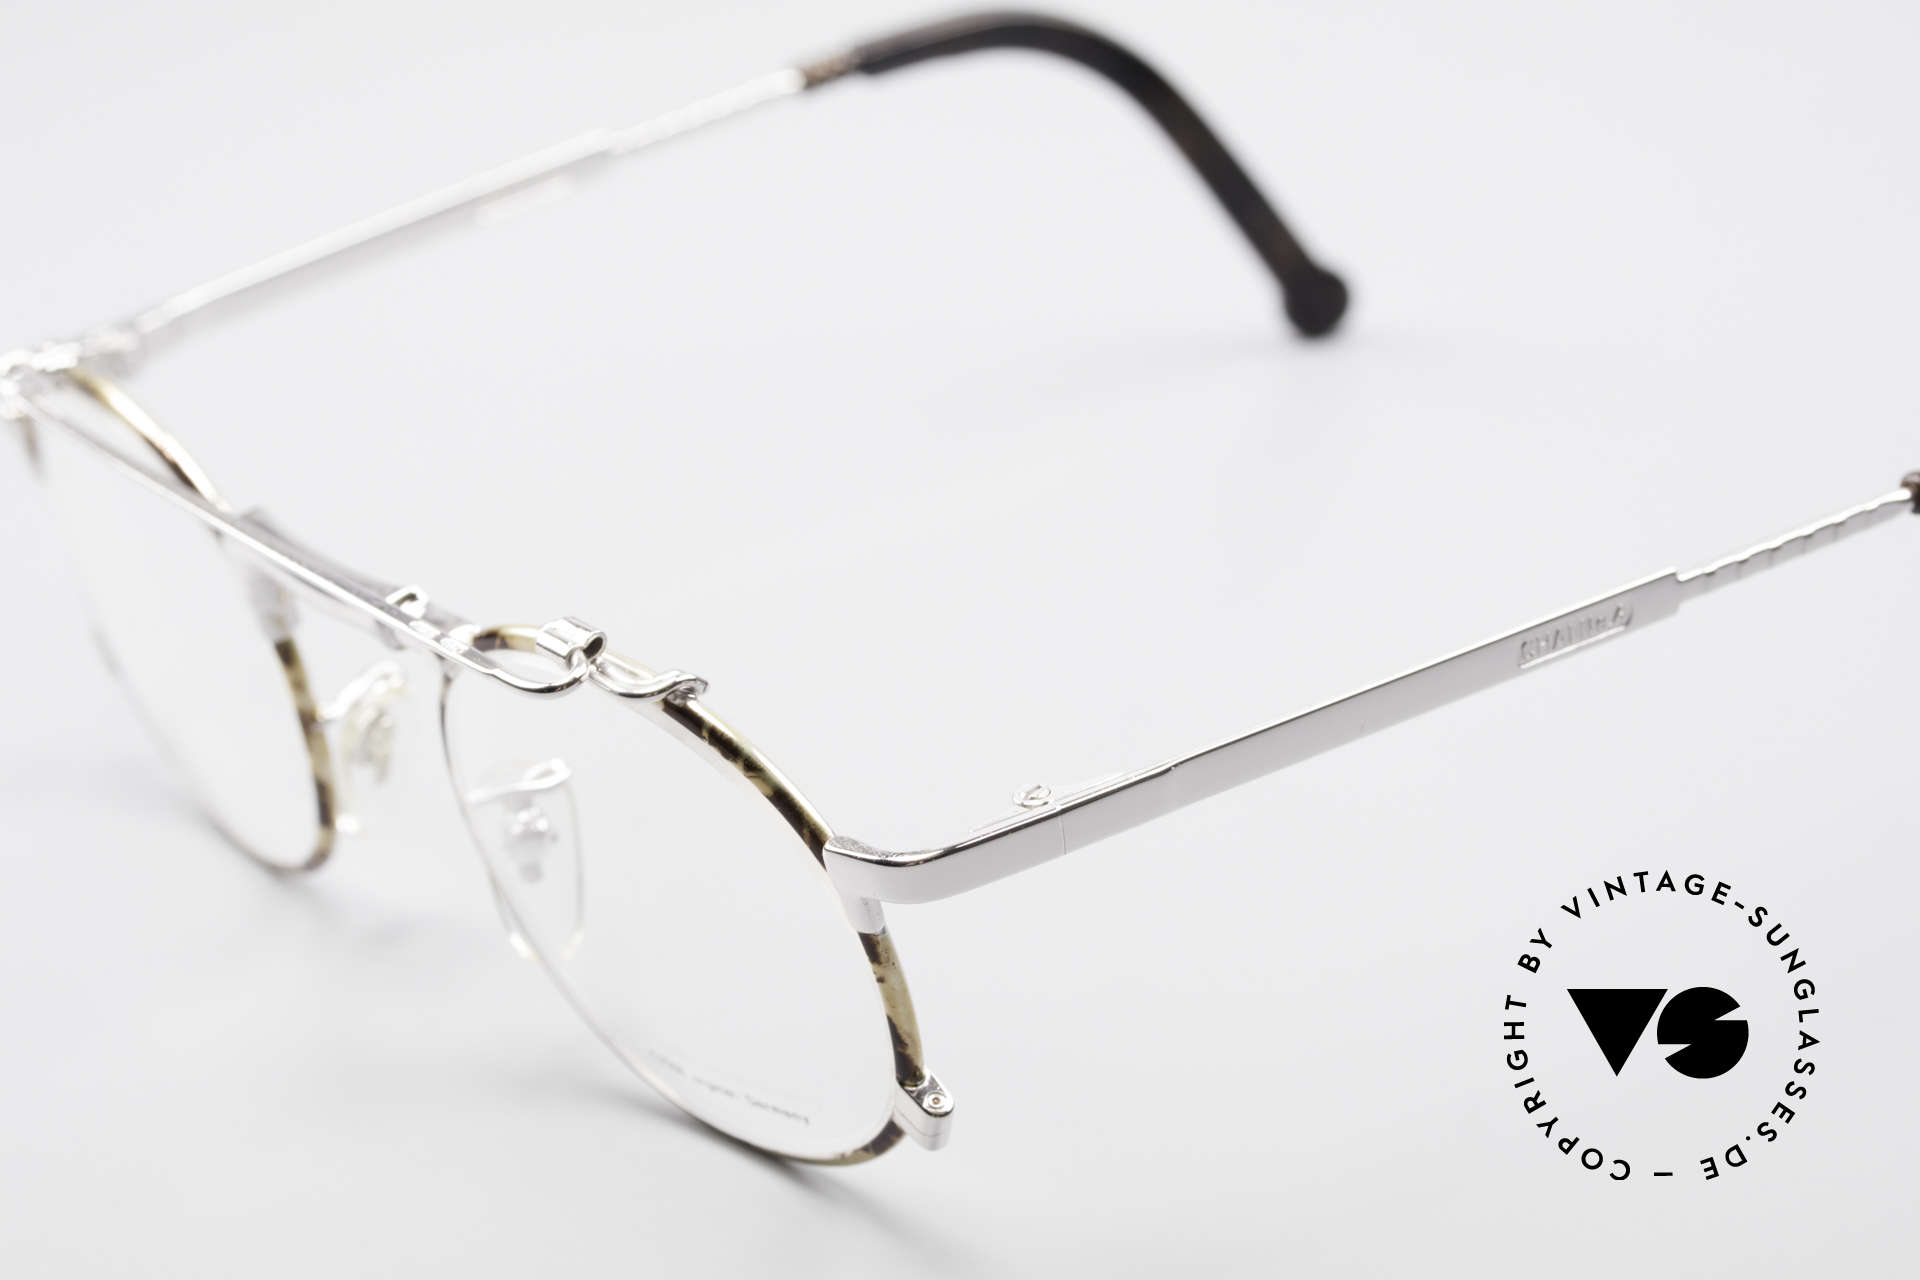 Chai No4 Round Industrial Vintage Eyeglasses, however, a great old designer piece from Germany, Made for Men and Women